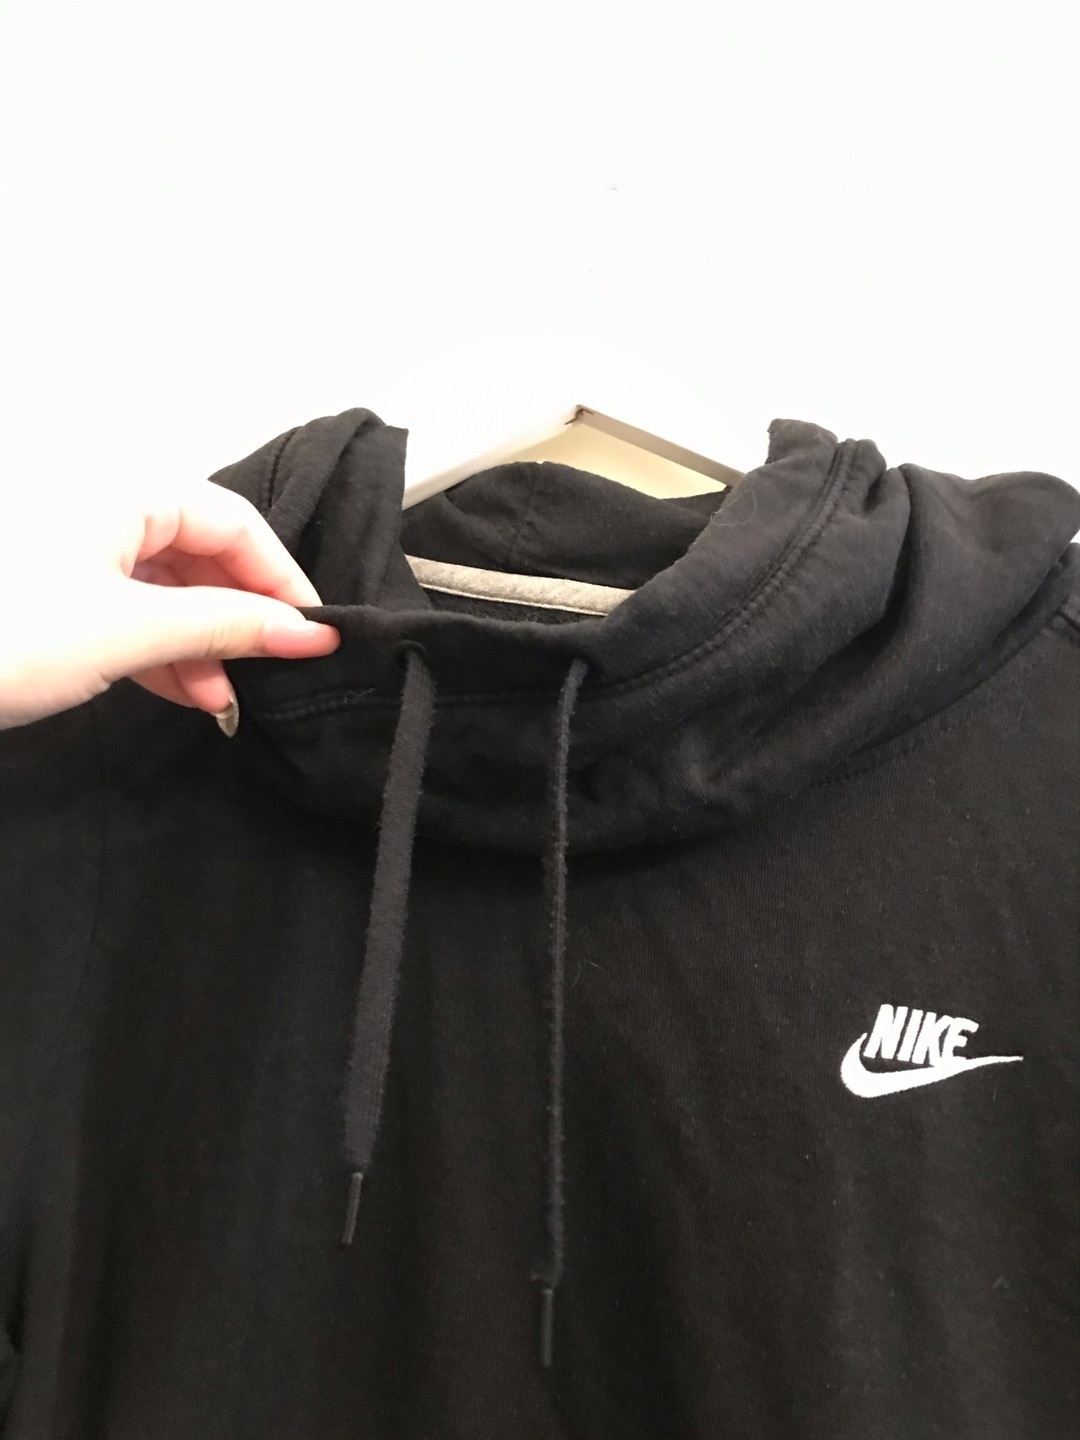 Women's hoodies & sweatshirts - NIKE photo 2